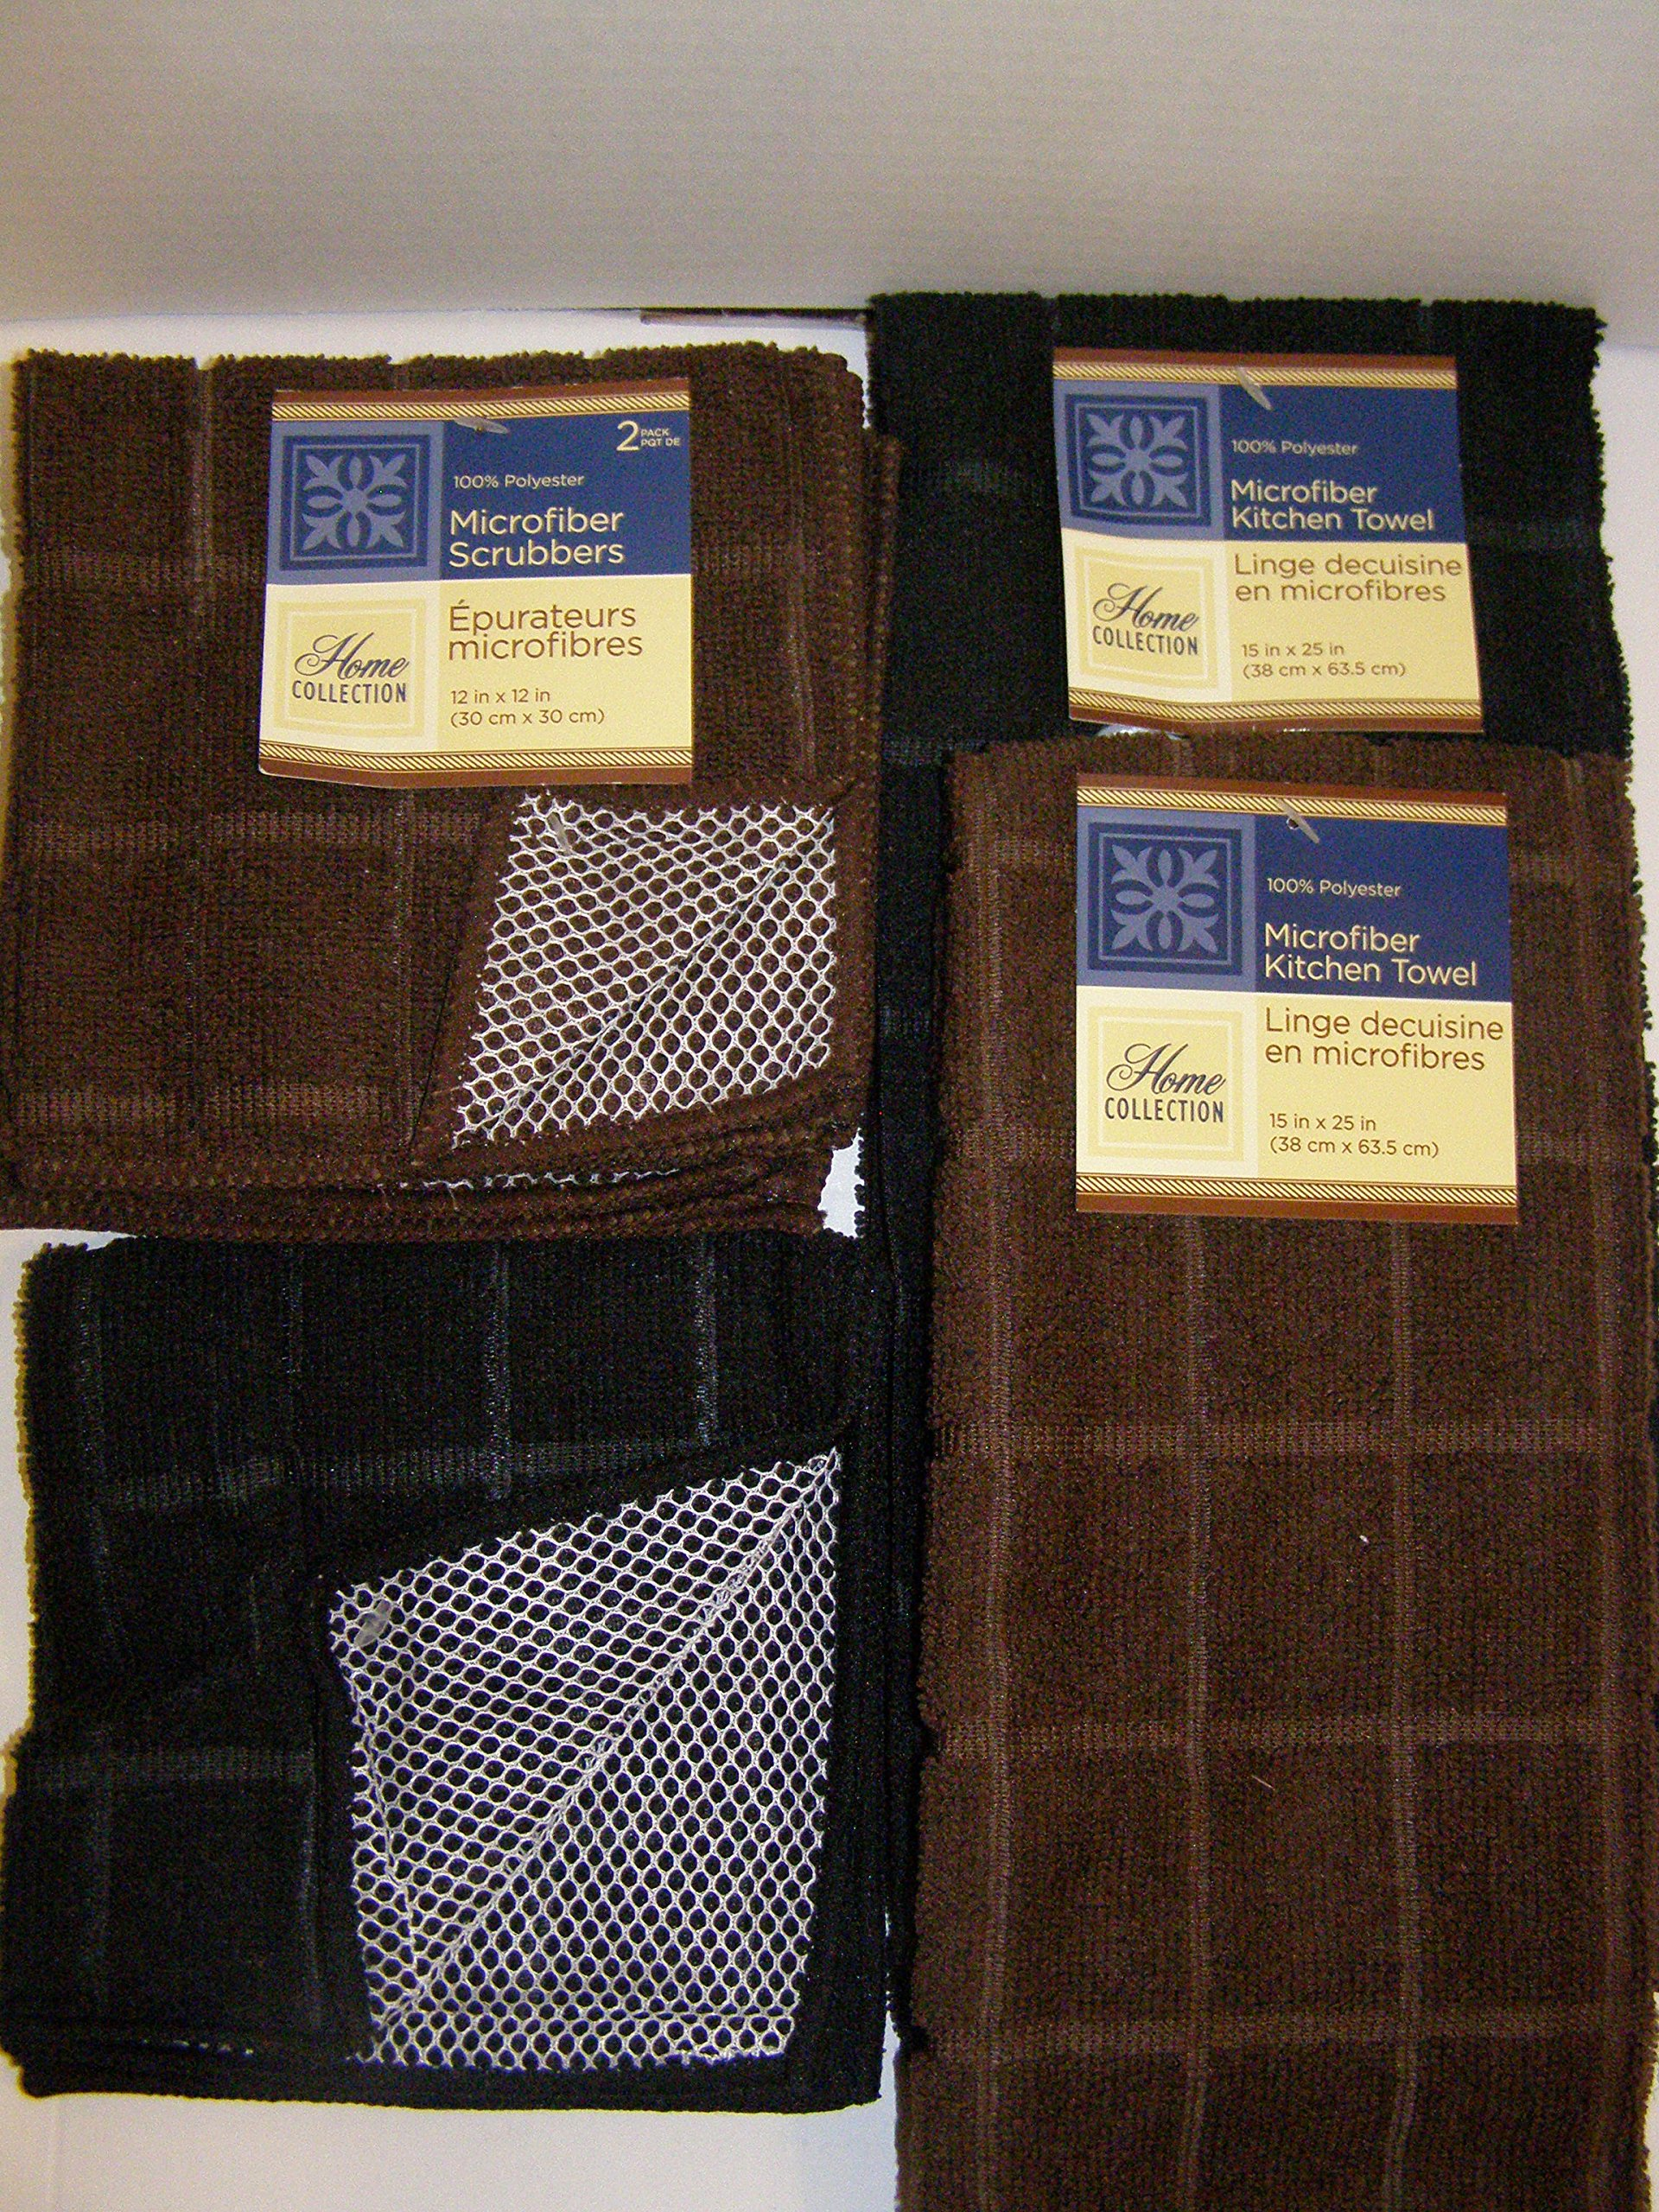 Bundle of Kitchen Linens by Home Collection Featuring: Kitchen Towels, Pot Holders, Oven Mitts, Dishcloths, Dish Drying Mat (10, Solid Brown & Black)